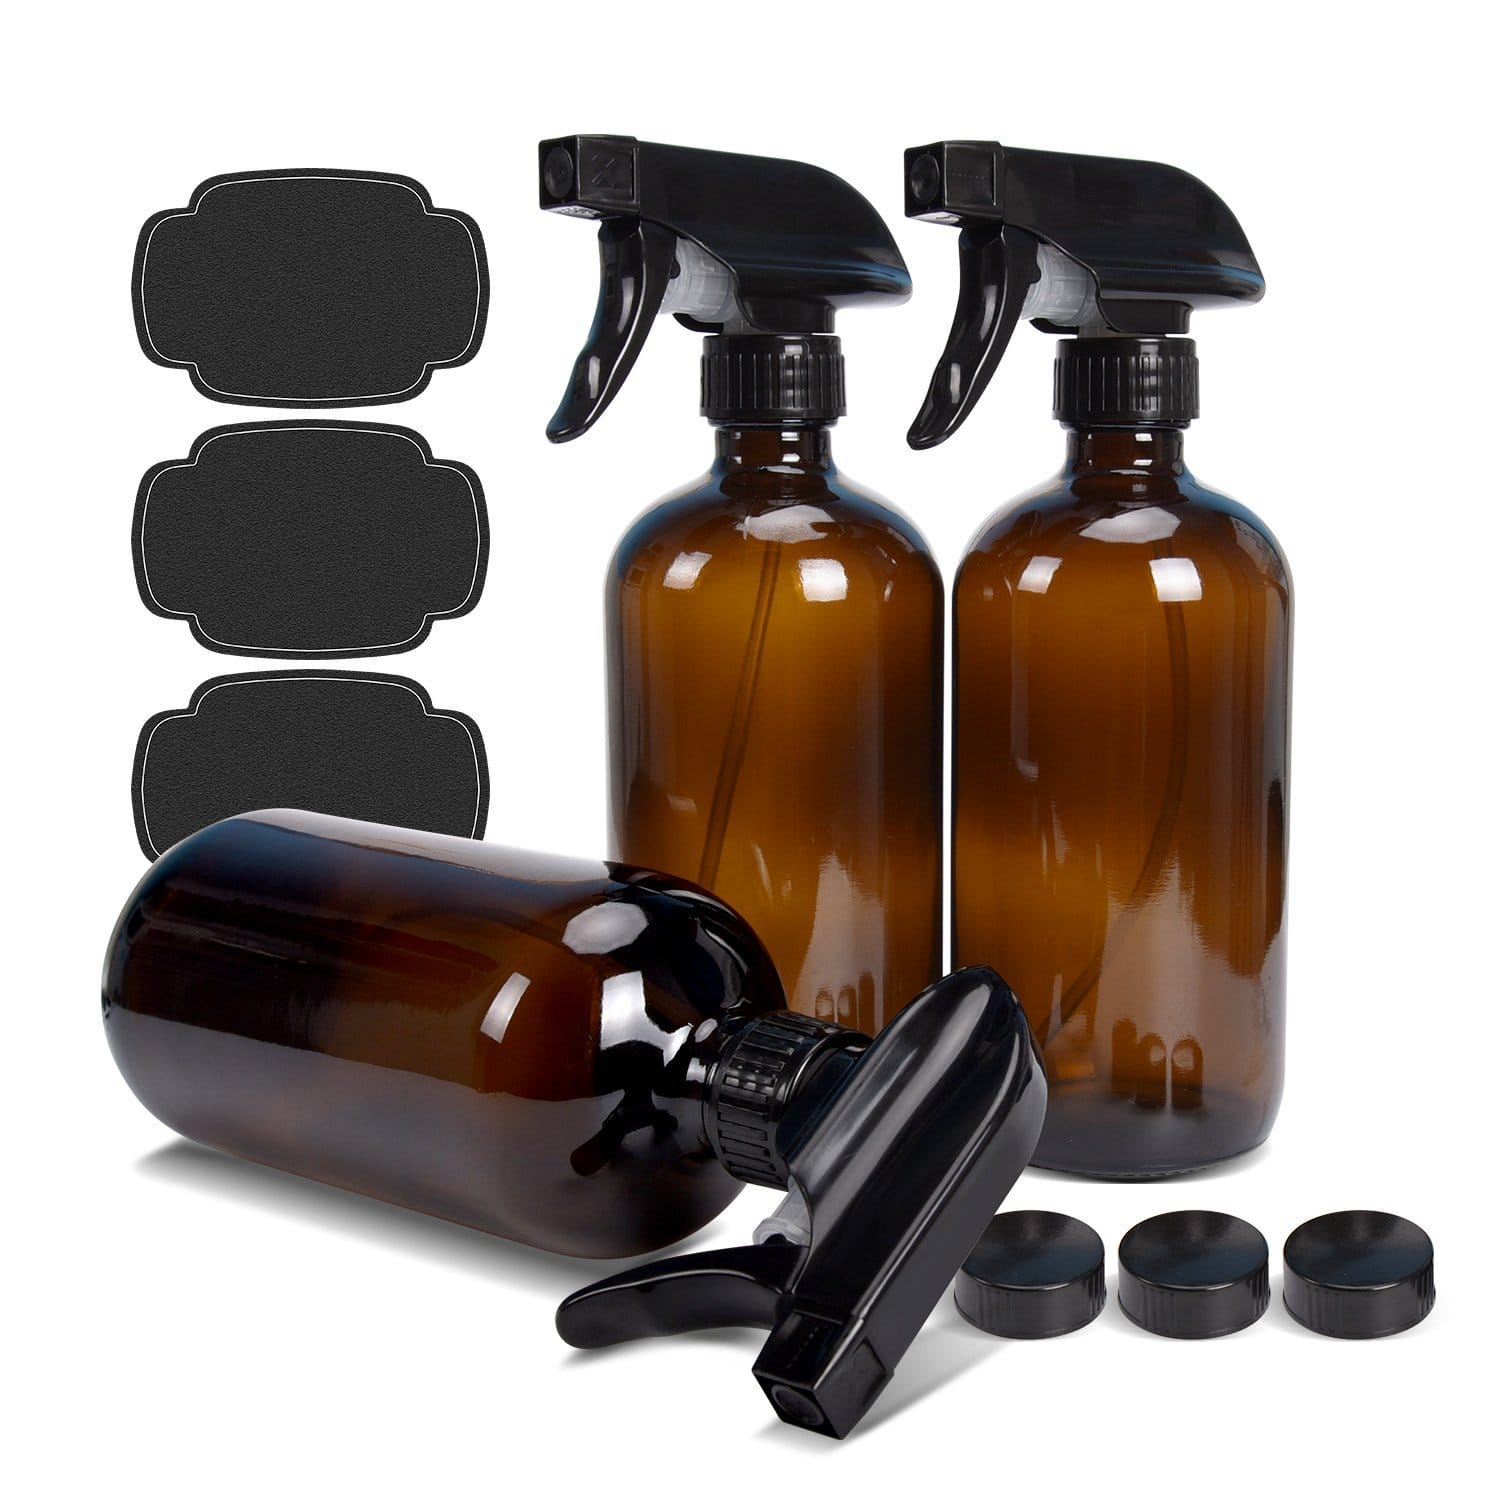 16 oz ULG 3 Piece Amber Spray Empty Glass Bottles - Heavy Duty Trigger Sprayer Mist and Stream Settings for Essential Oils Cleaning Products $9.37